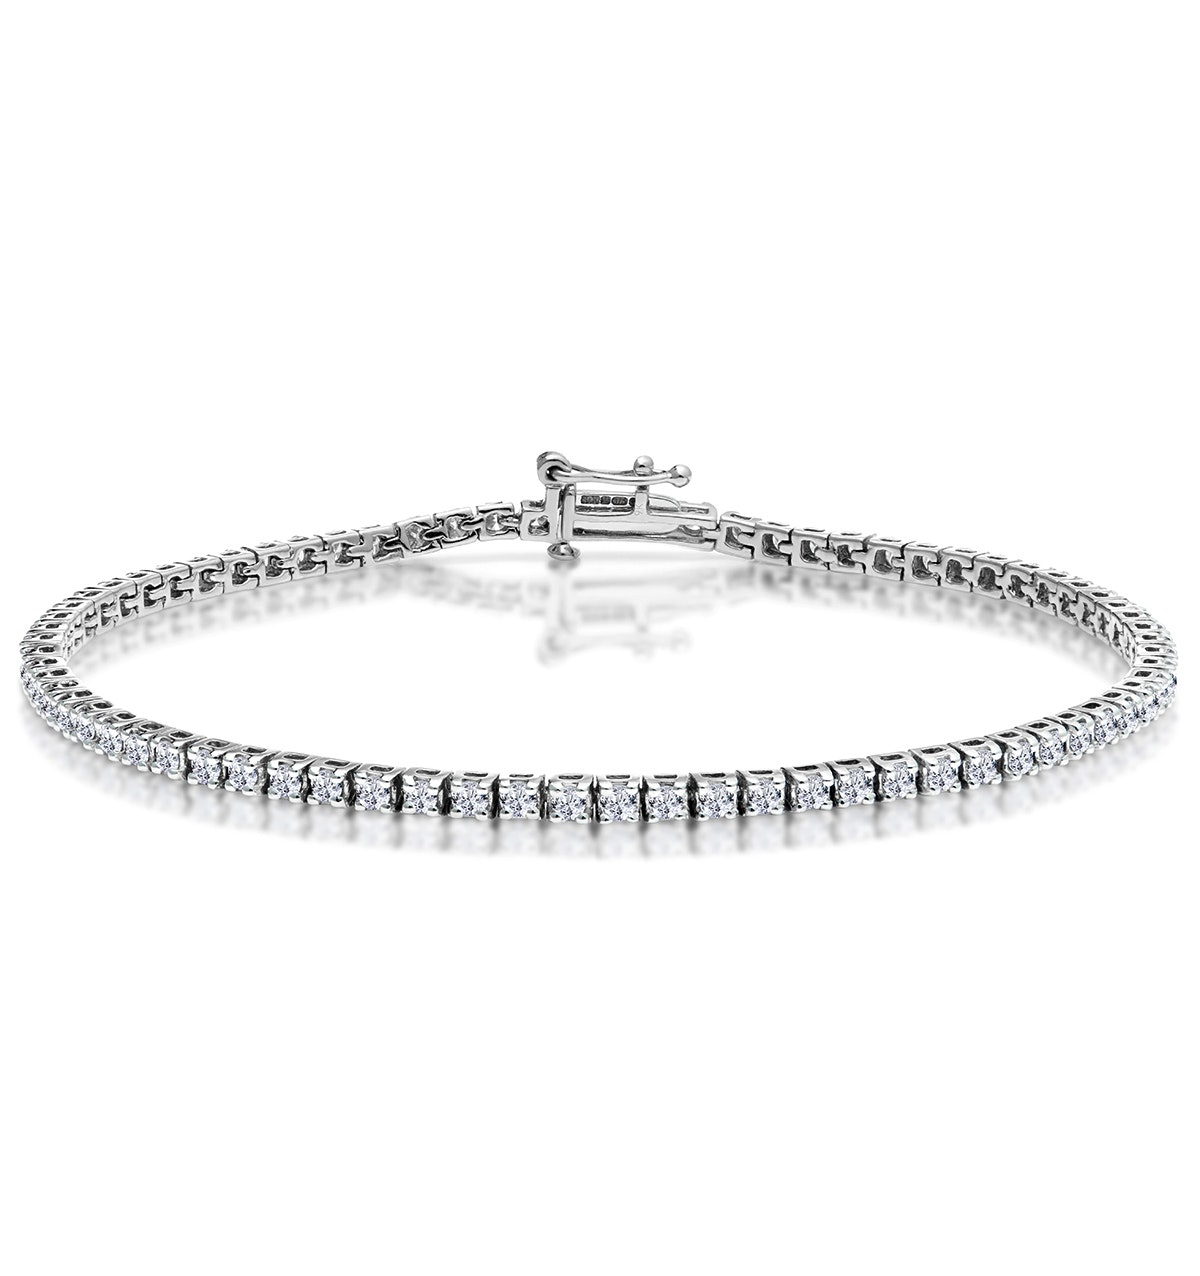 2ct Diamond Tennis Bracelet Claw Set in 9K White Gold